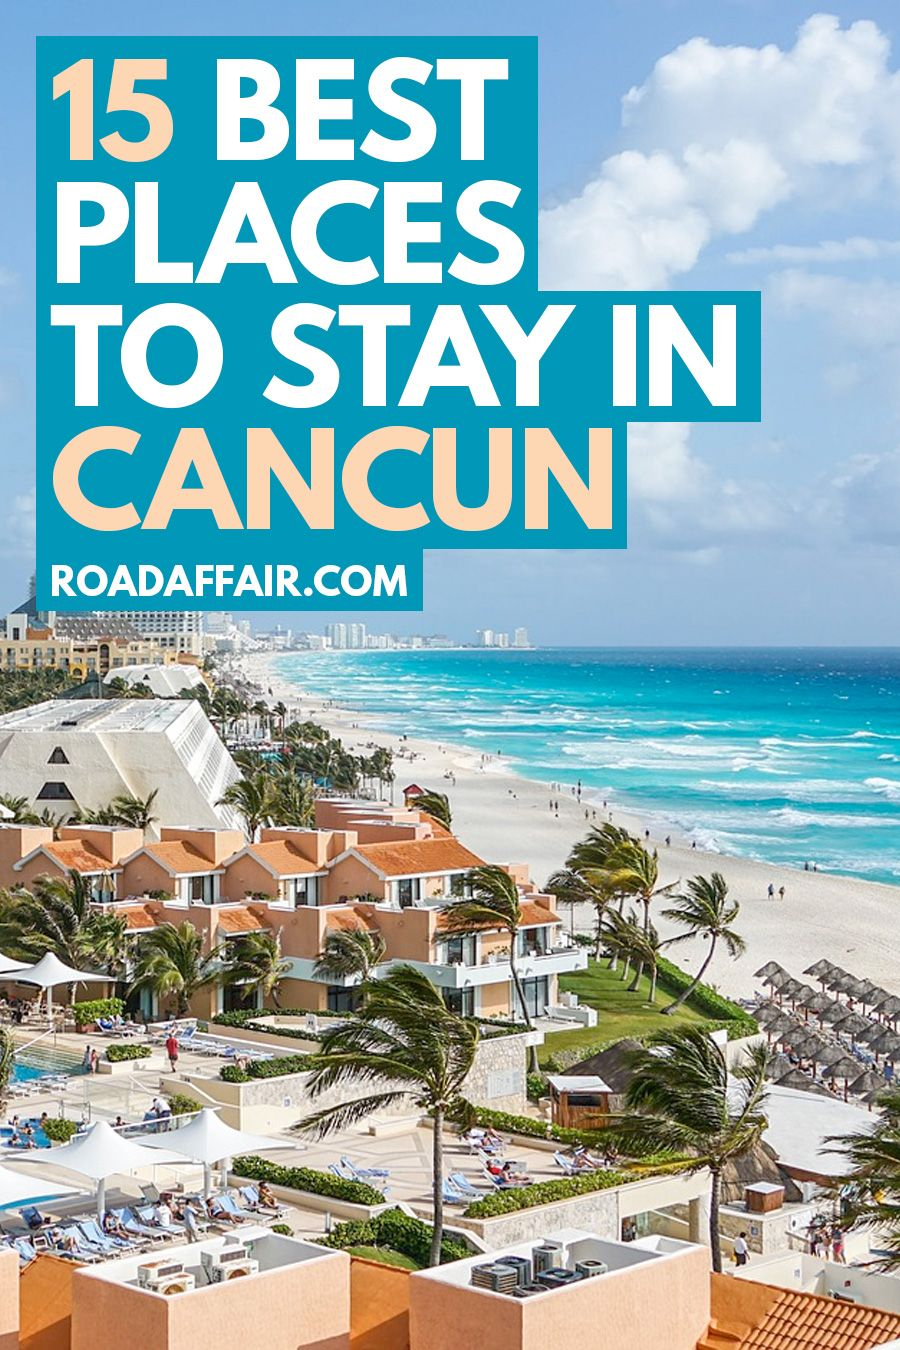 Where To Stay In Cancun Best Hostels Hotels In Cancun 2021 Road Affair Cancun Mexico Hotels Cancun Hotels Mexico Hotels